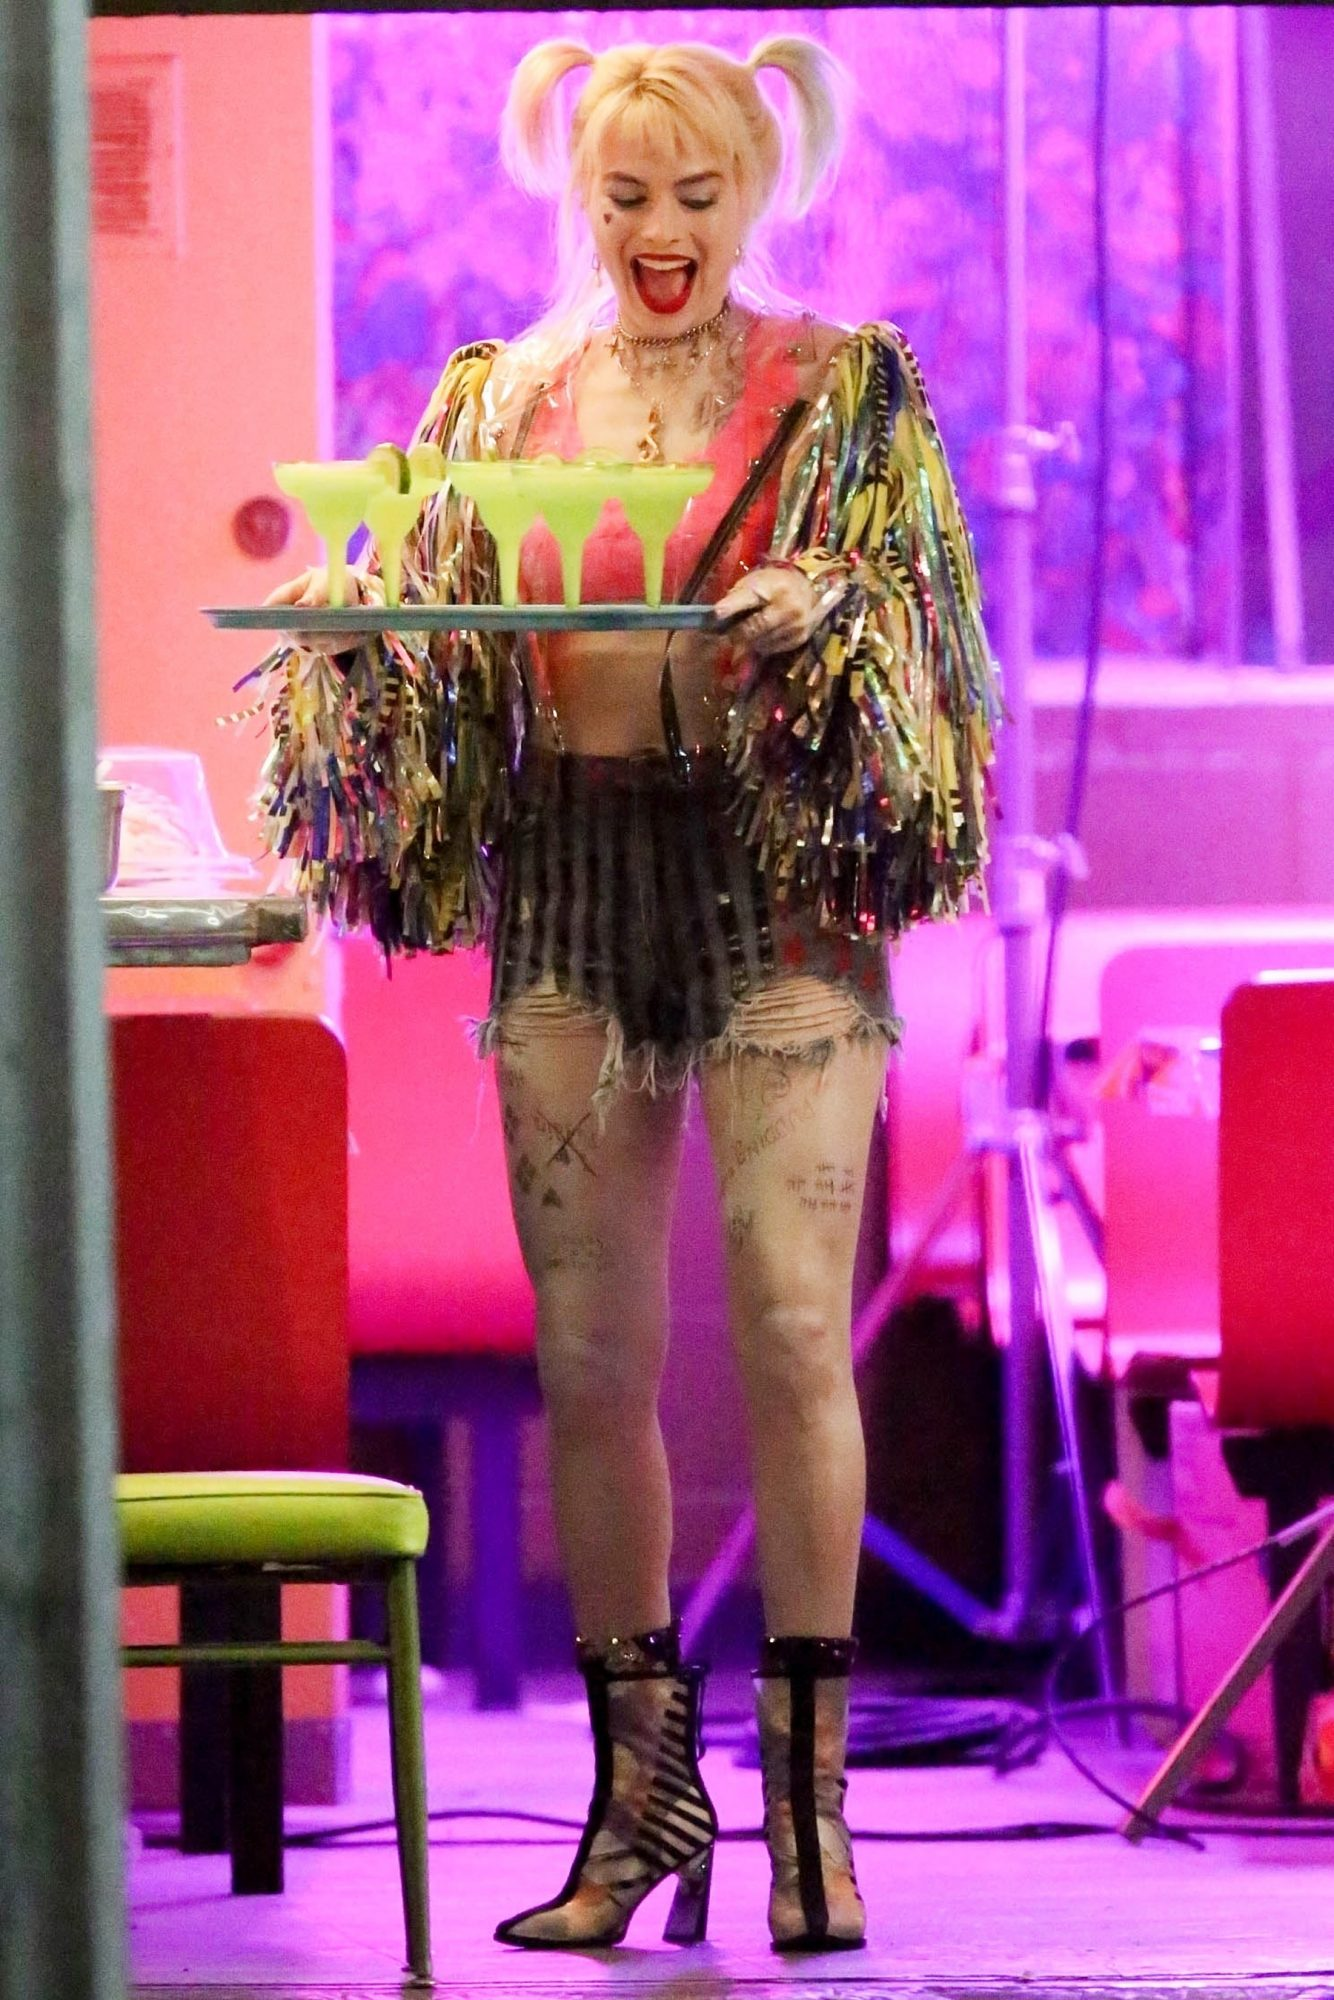 Margot Robbie brings Harley Quinn to the party as she serves up margaritas in Los Angeles, CA